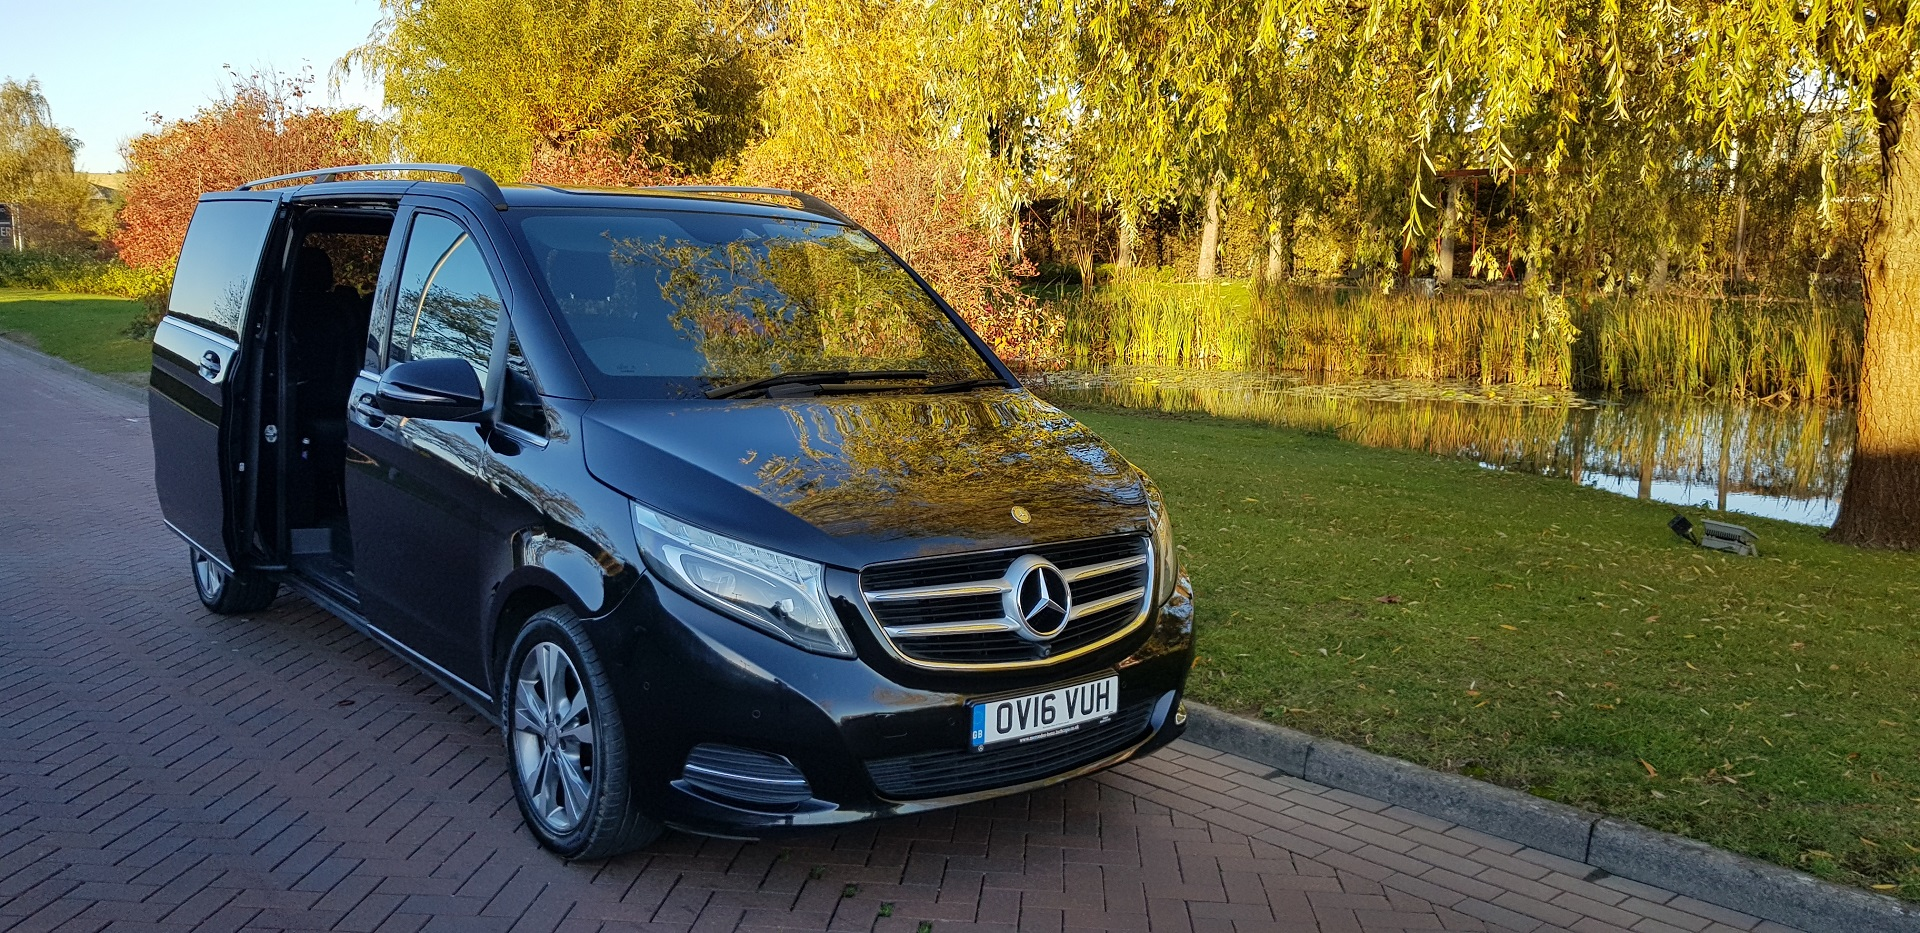 Mercedes V Class hire london